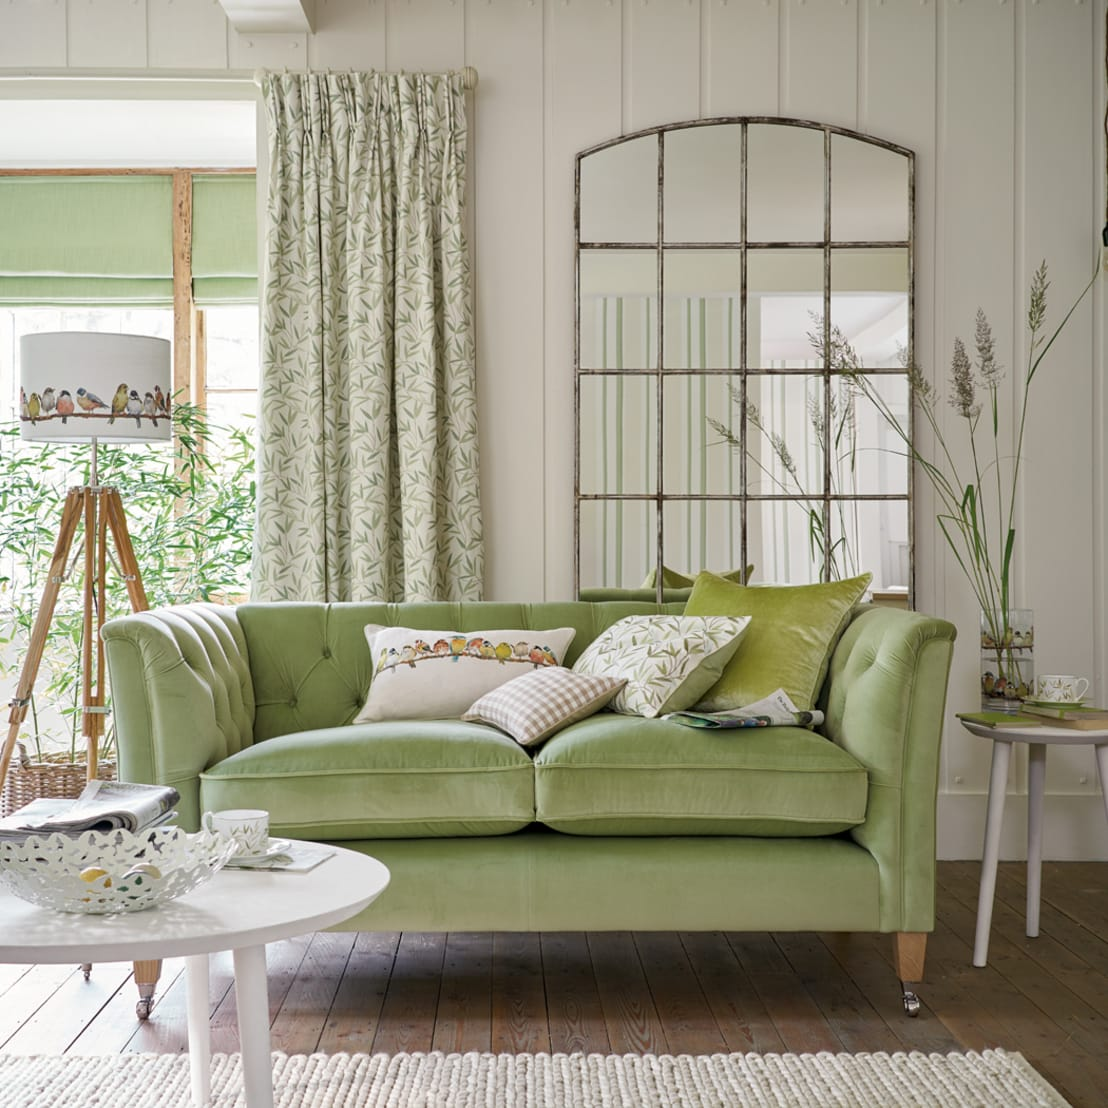 Timeless Country Primavera Verano 2016 By Laura Ashley Decoraci N Homify